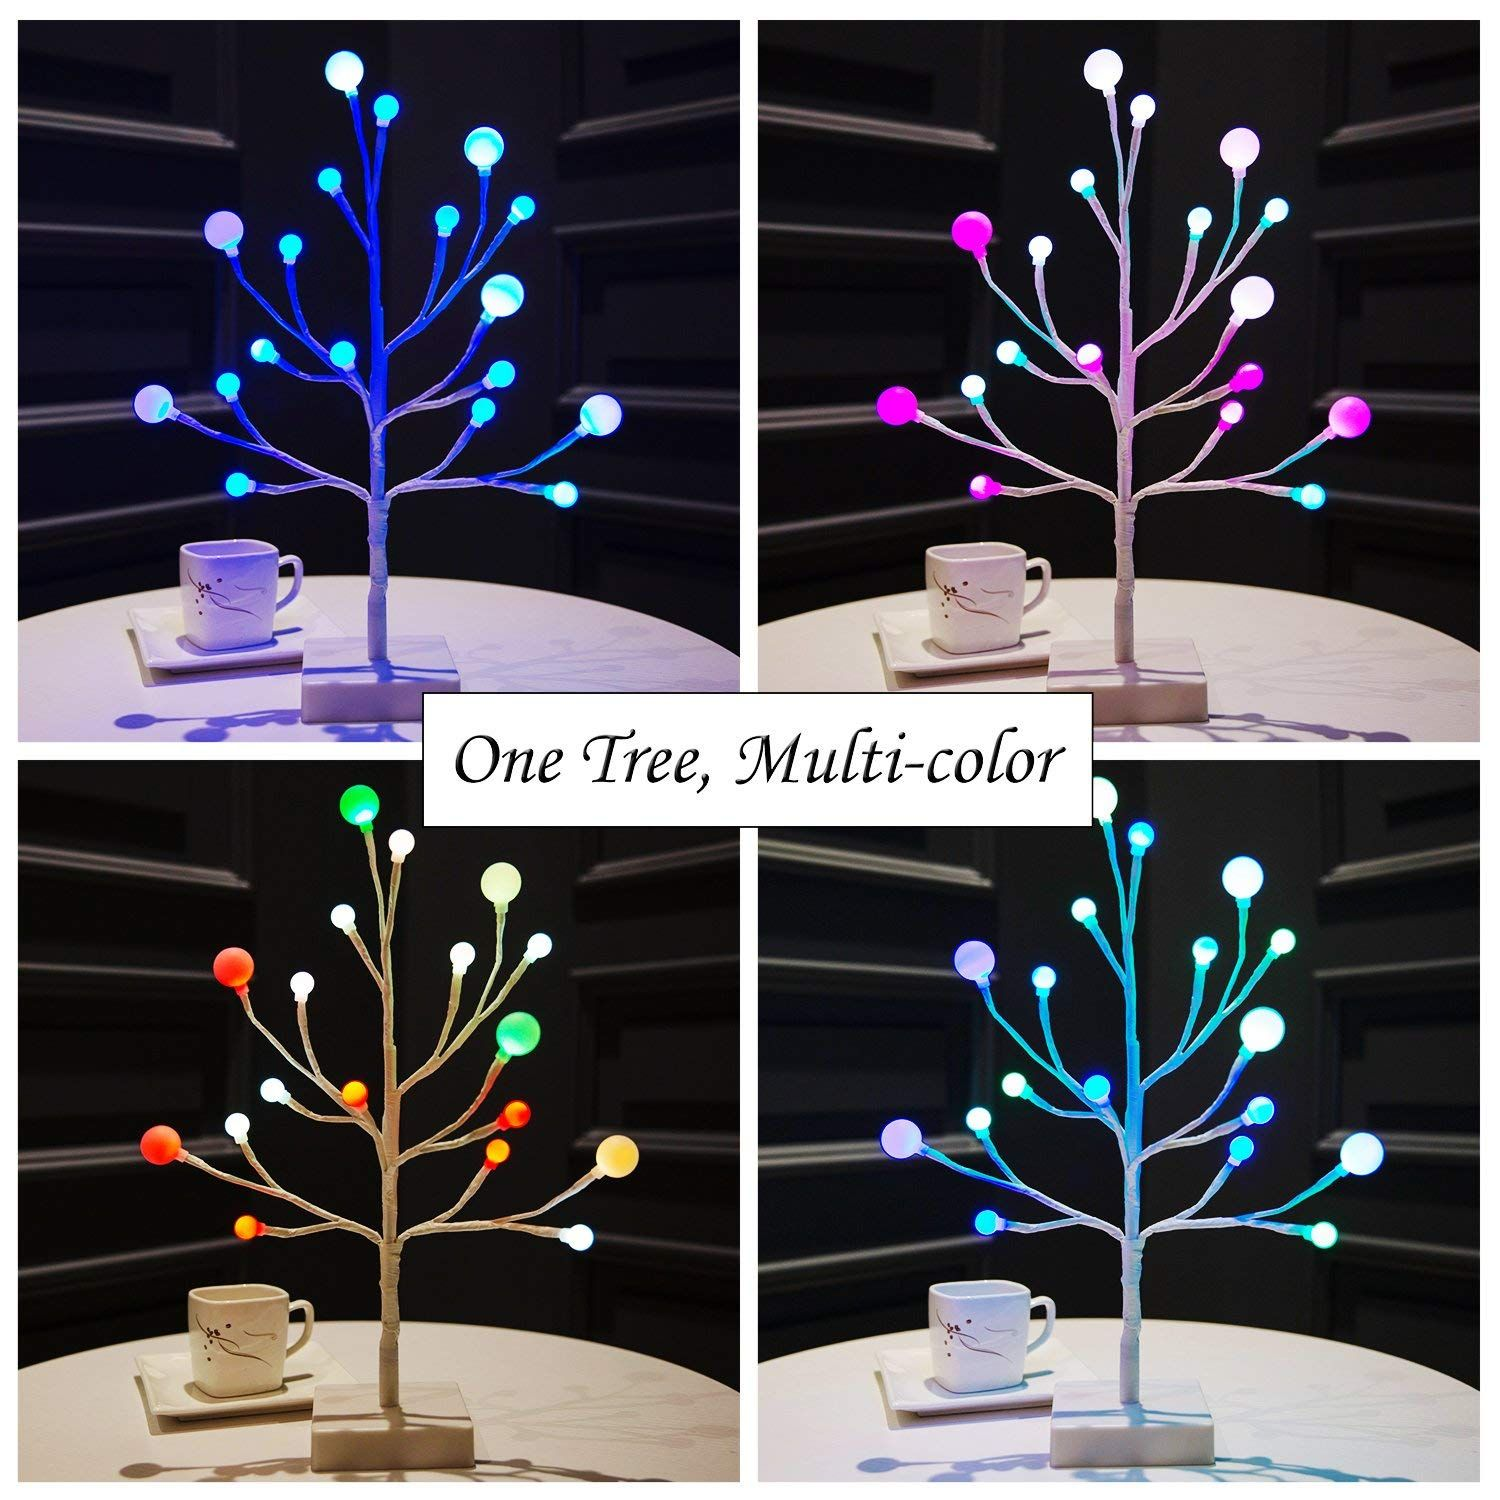 Bolylight Led Tree Multi Color Frosted Ball Light Table Lamp Night Light Great Decoration For Home Christ Ball Lights Light Table Christmas Hanging Decorations